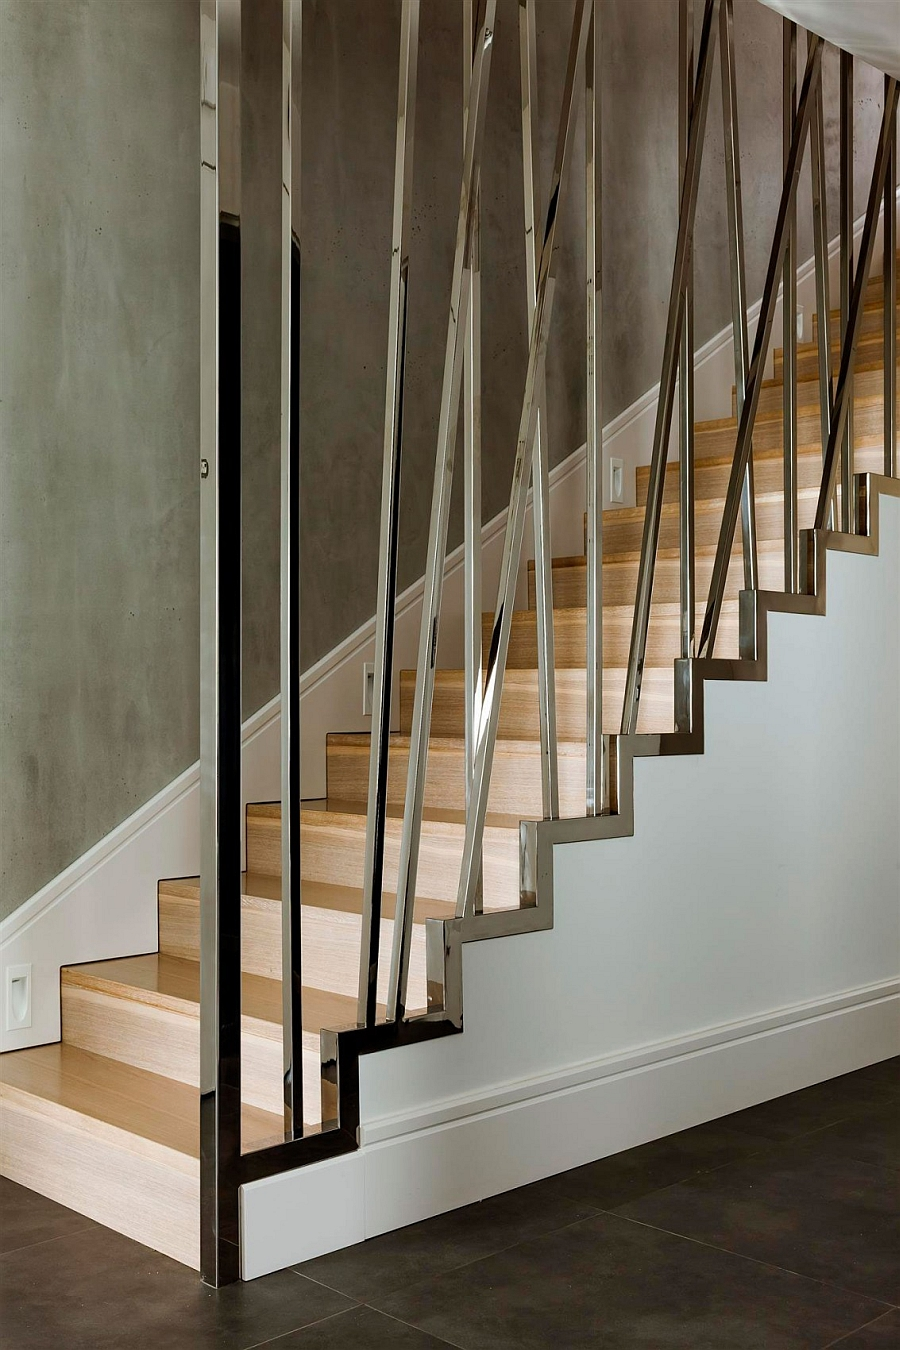 jur nyi l pcs on pinterest railings modern staircase and modern stairs